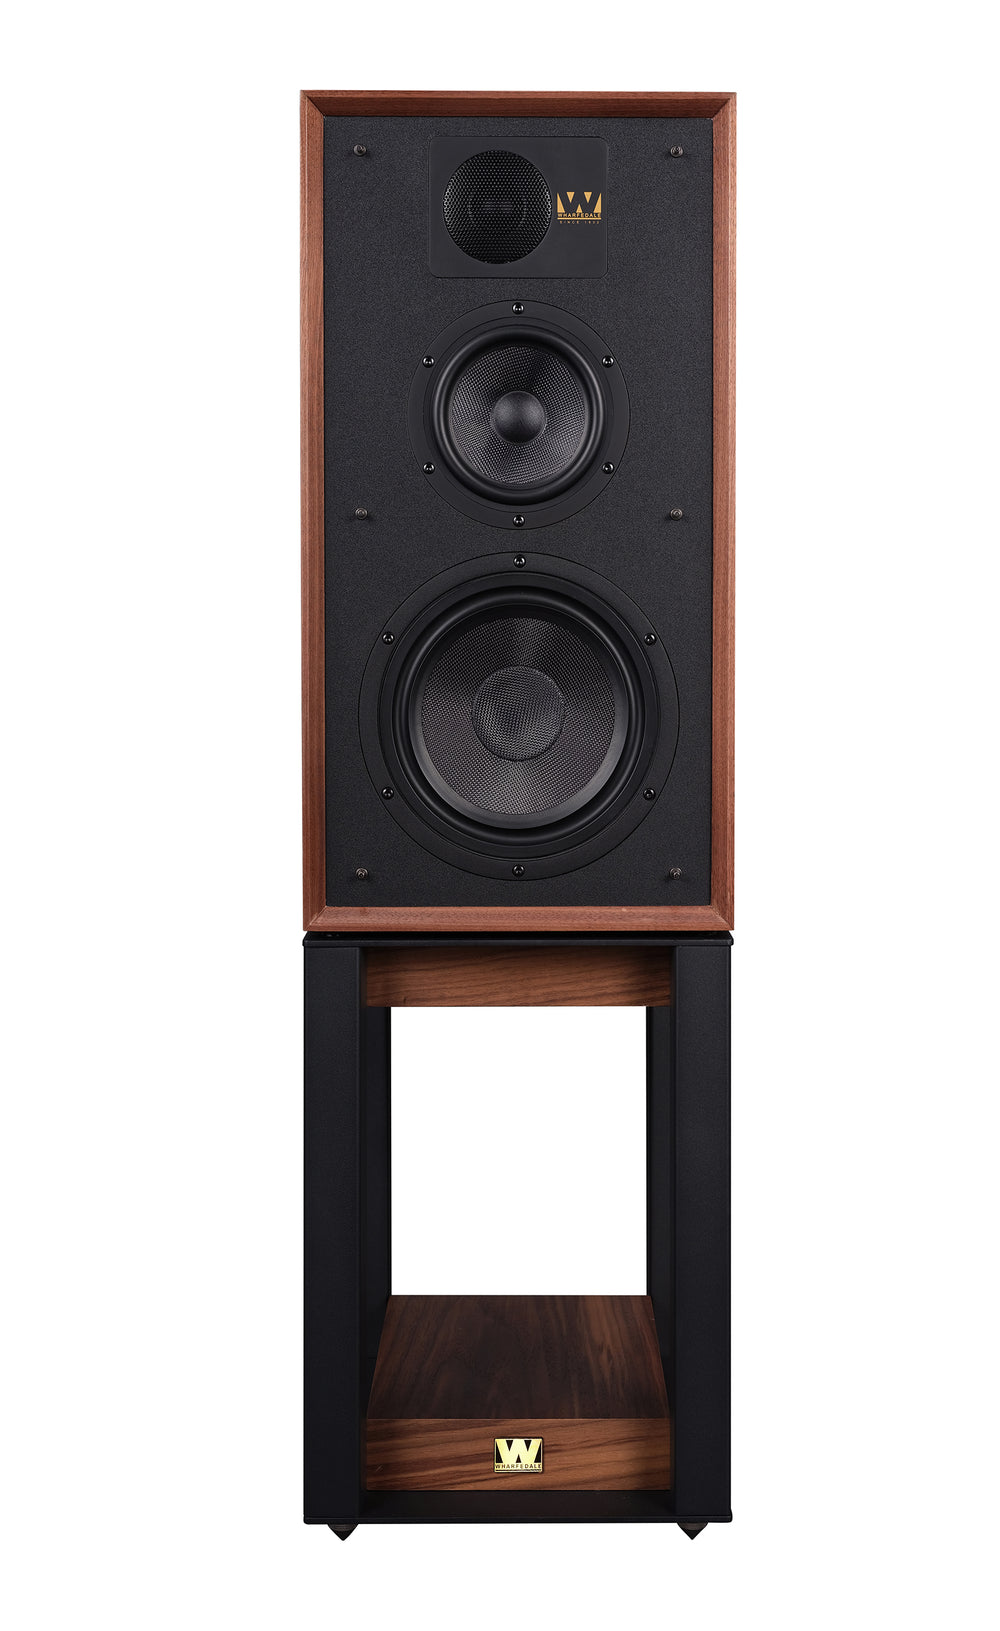 Linton 85th Anniversary Bookshelf Speakers